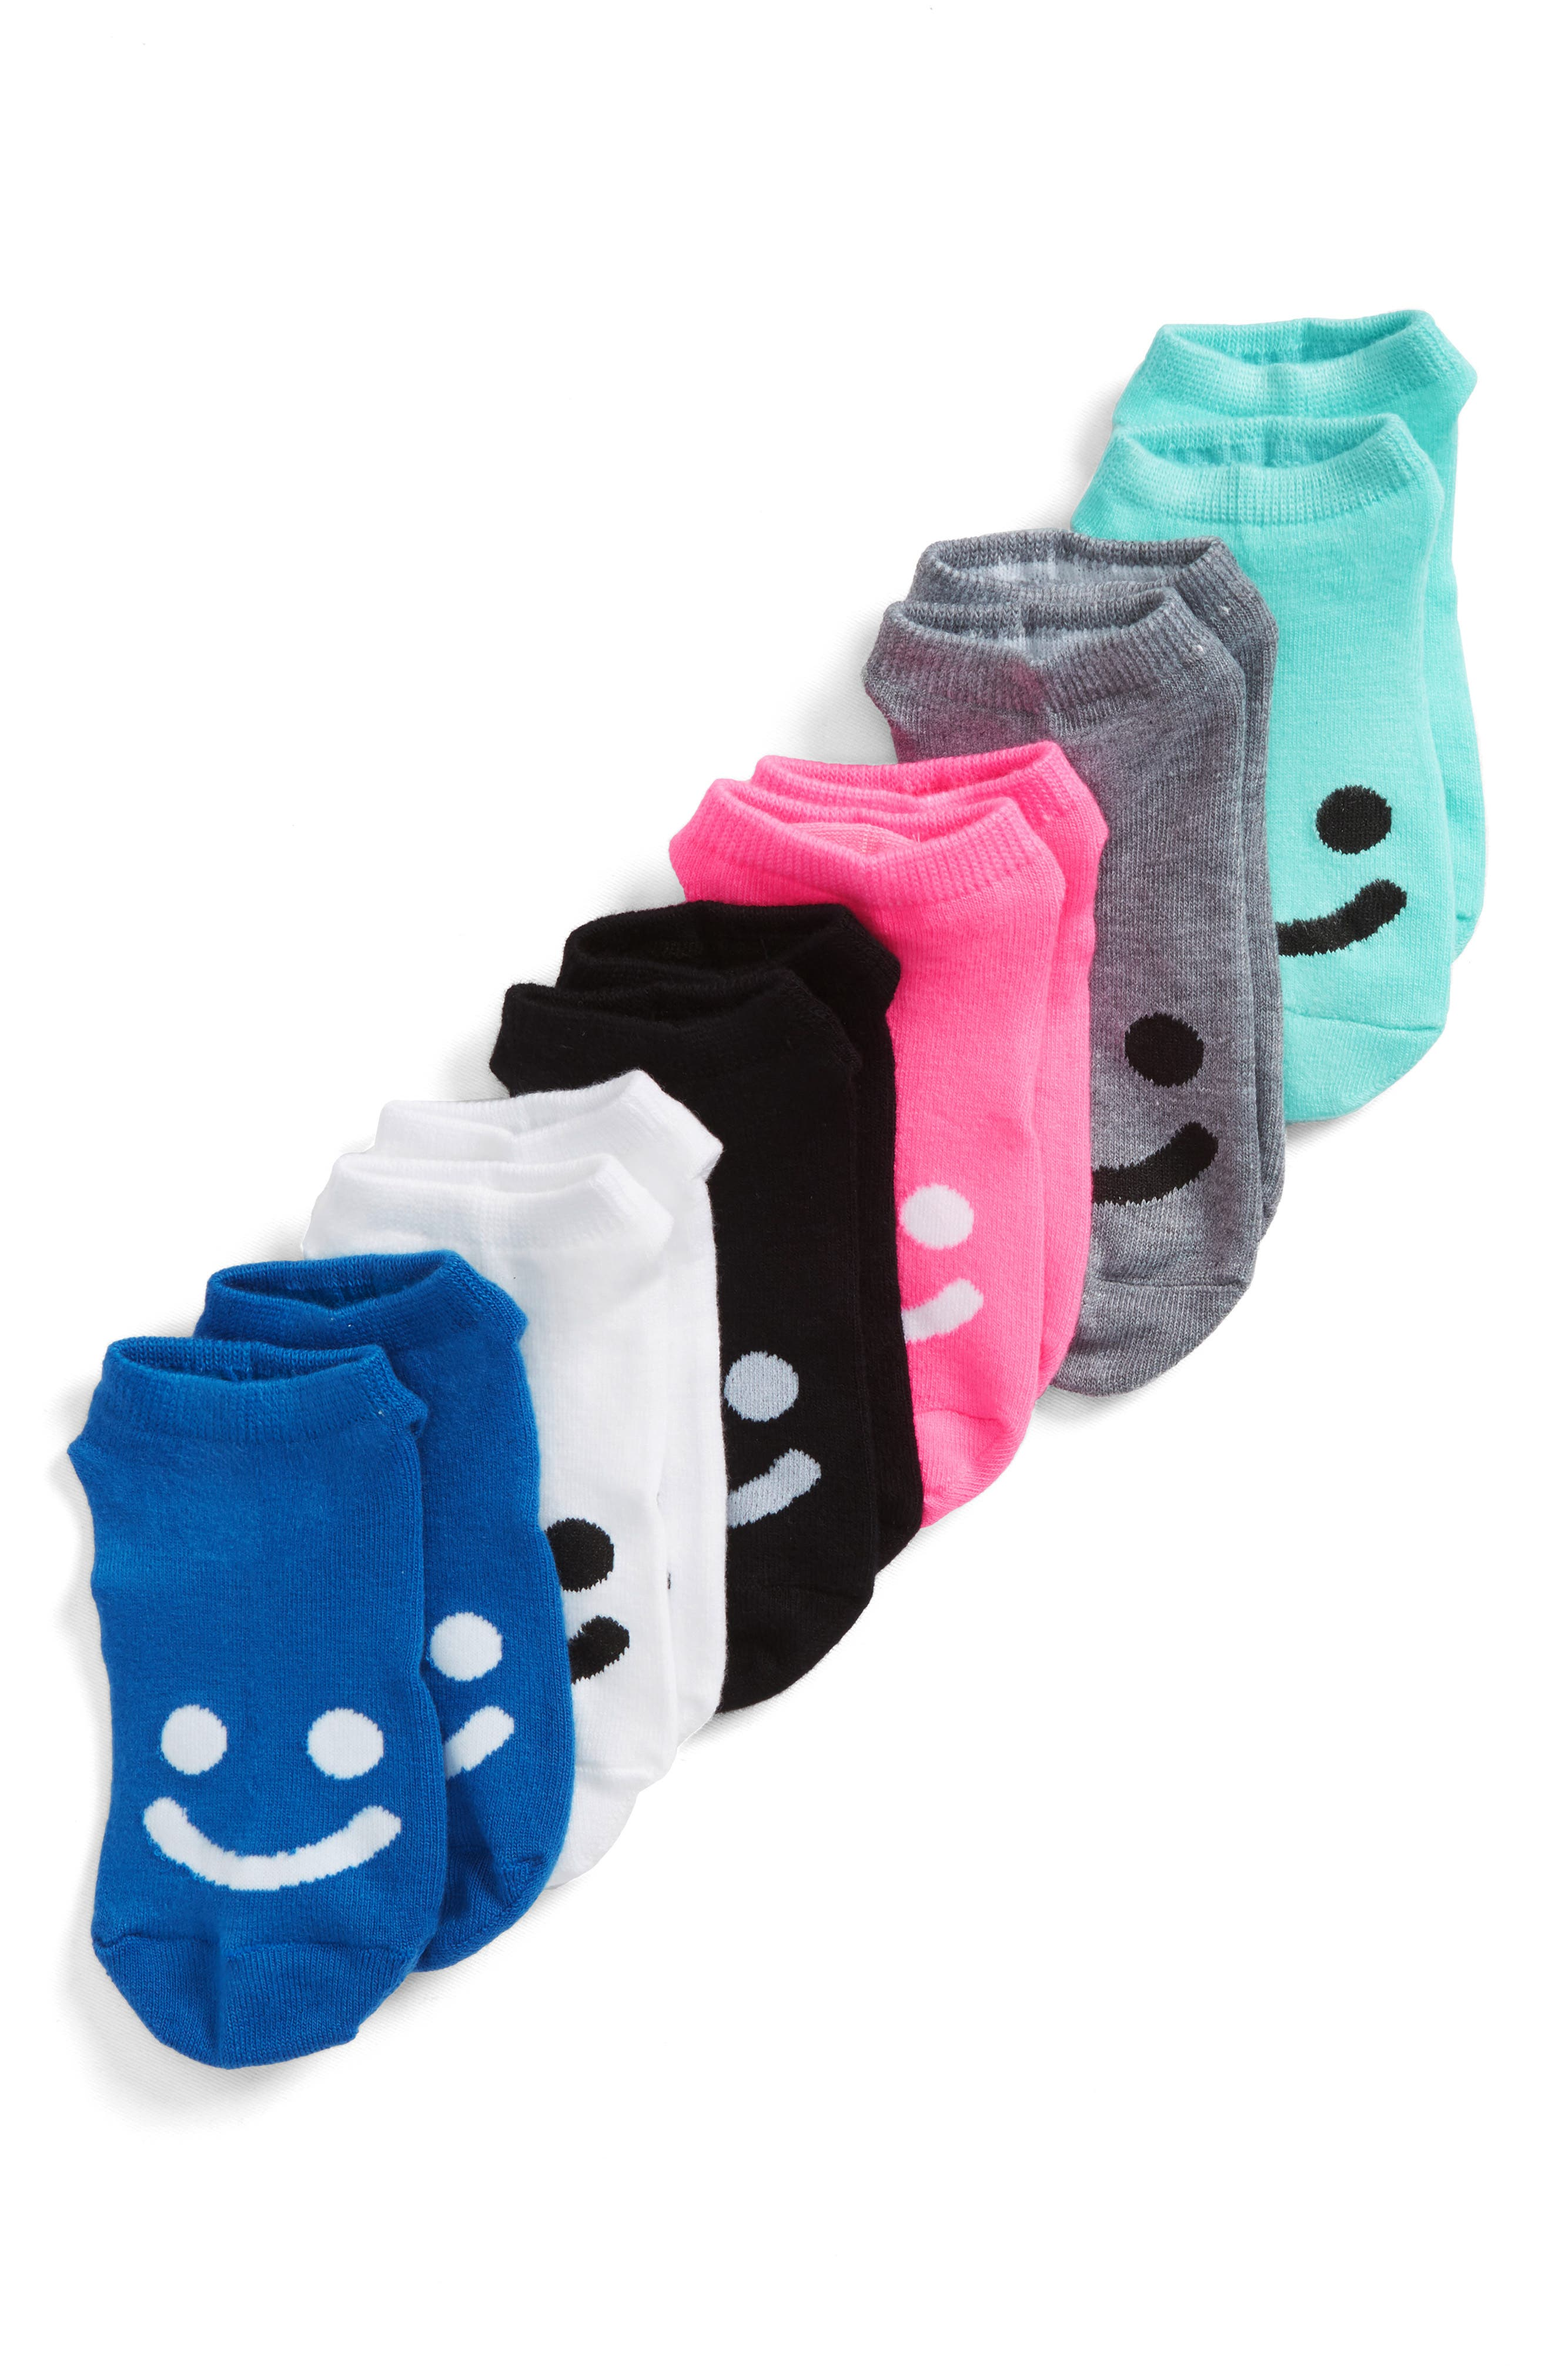 6-Pack All Smiles No-Show Socks,                             Alternate thumbnail 2, color,                             400